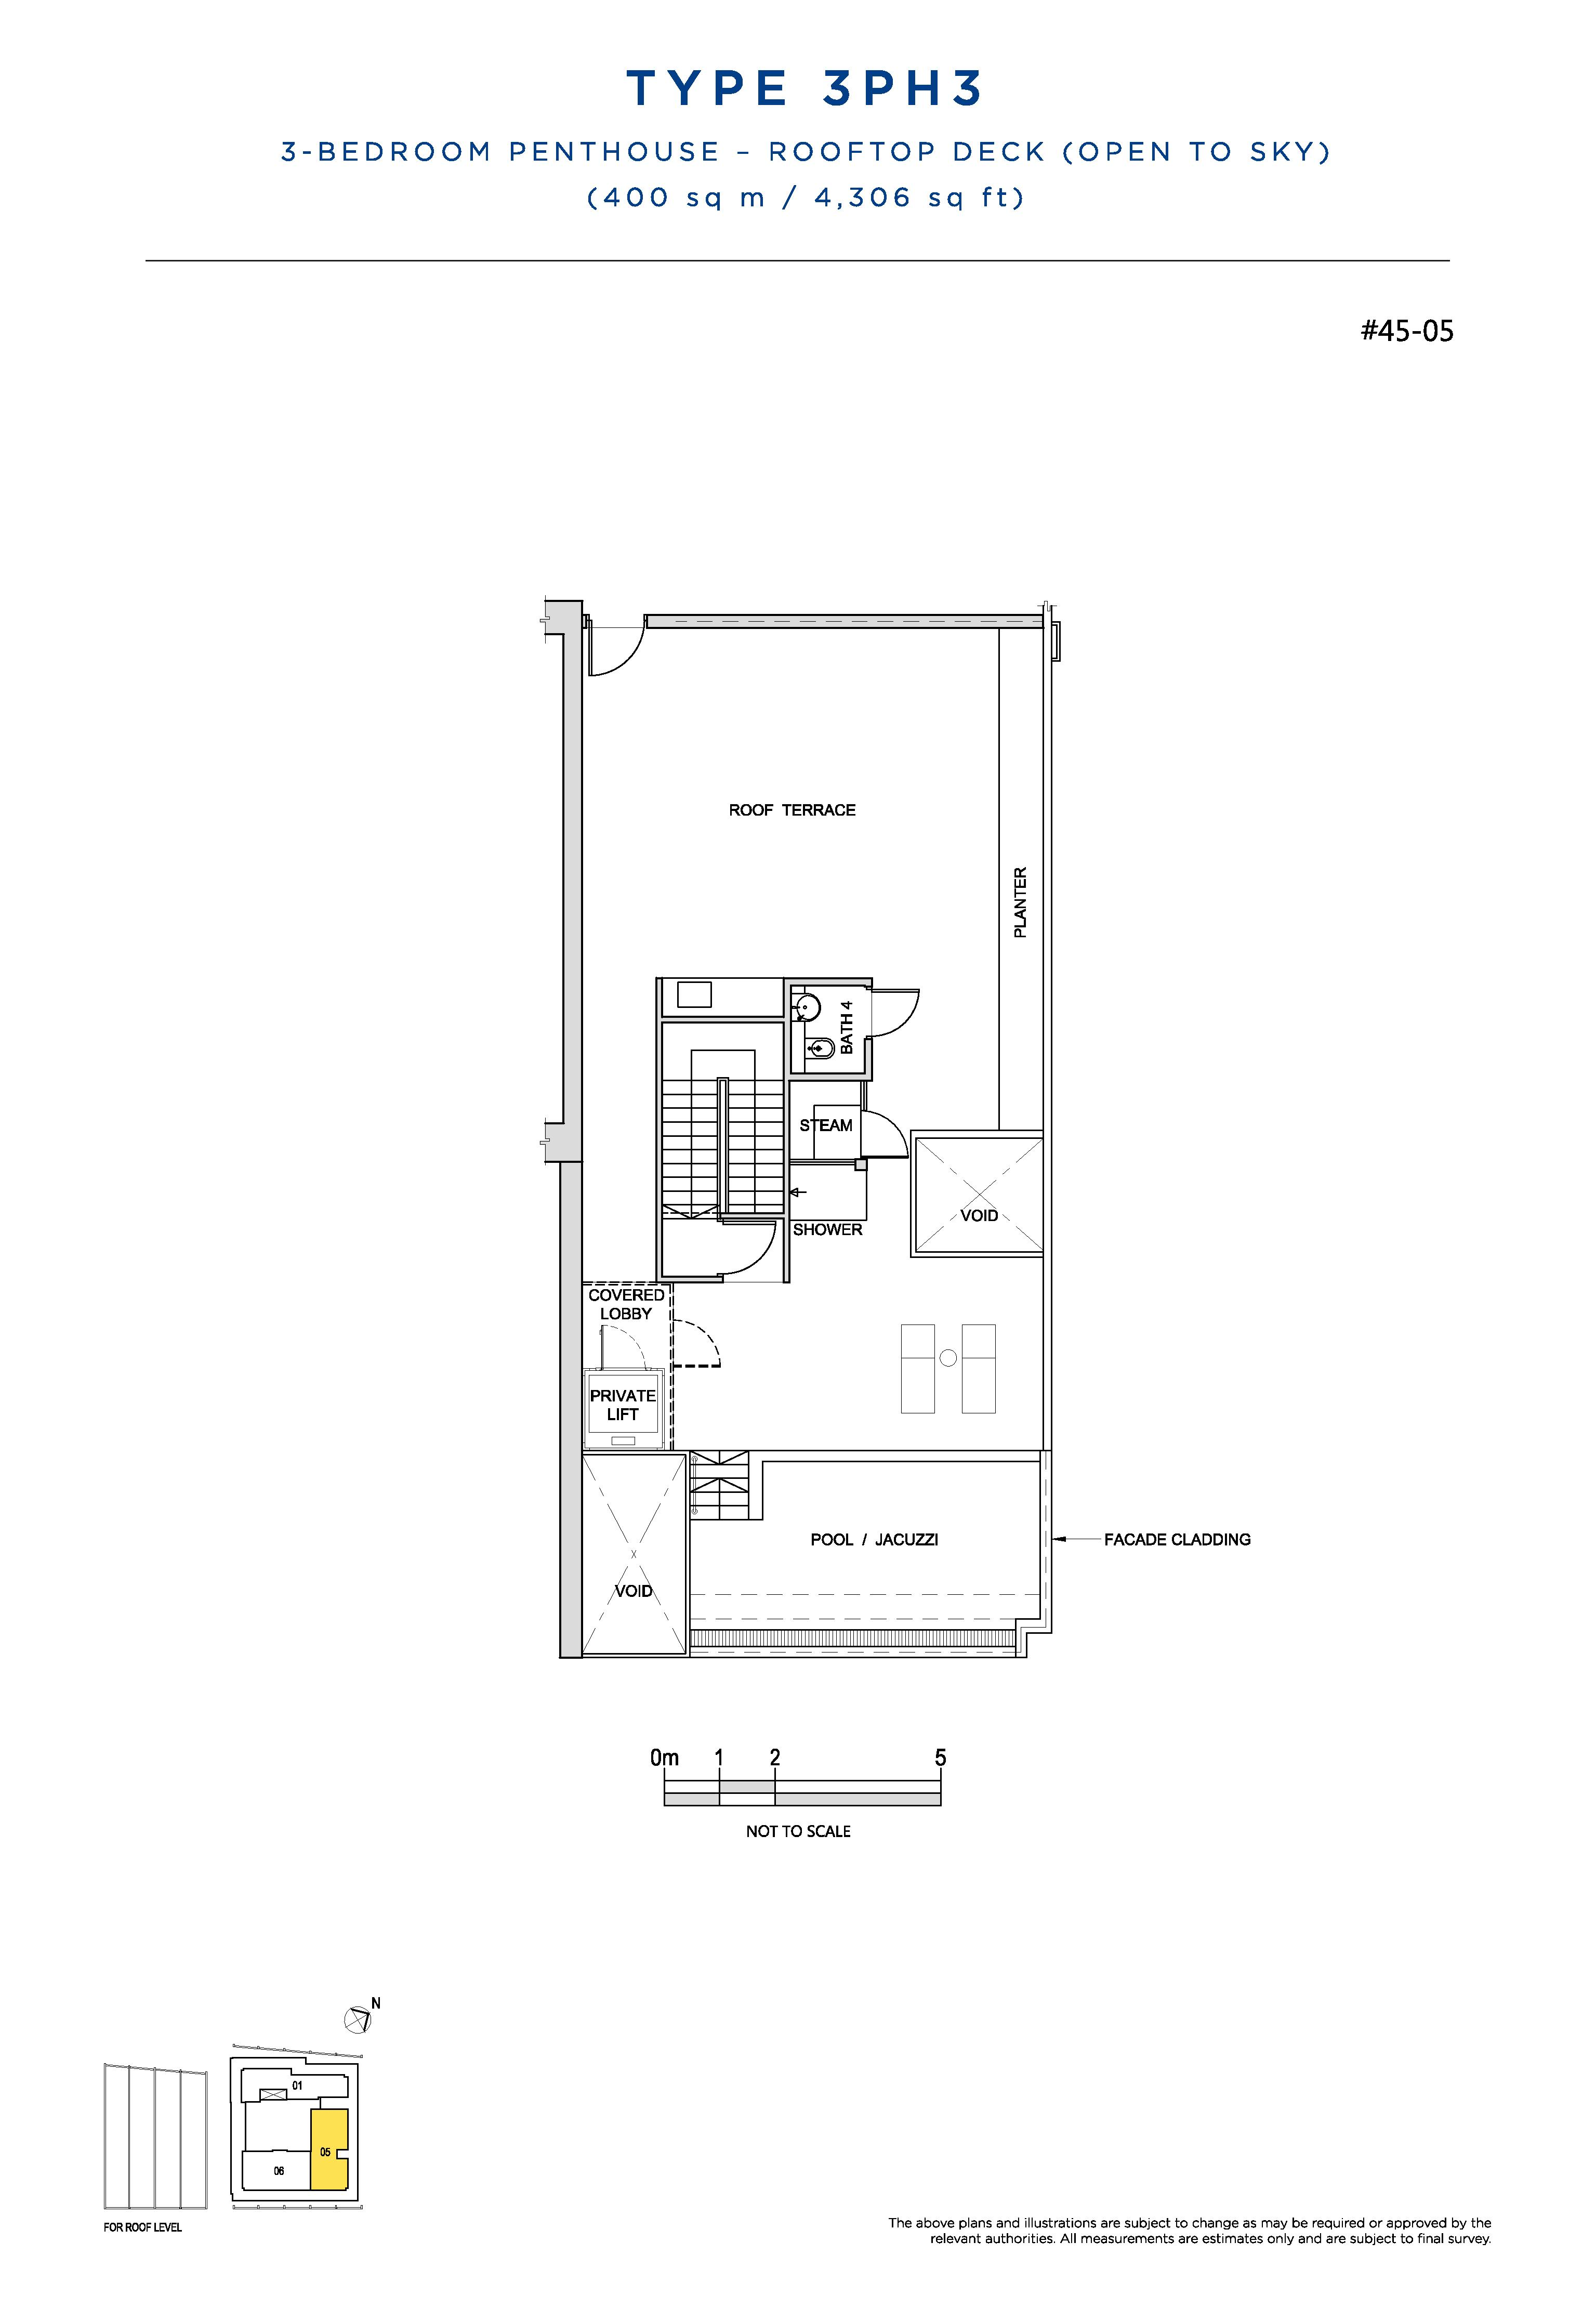 South Beach Residences 3 Bedroom Penthouse Floor Plans Type 3PH3(Rooftop Deck)